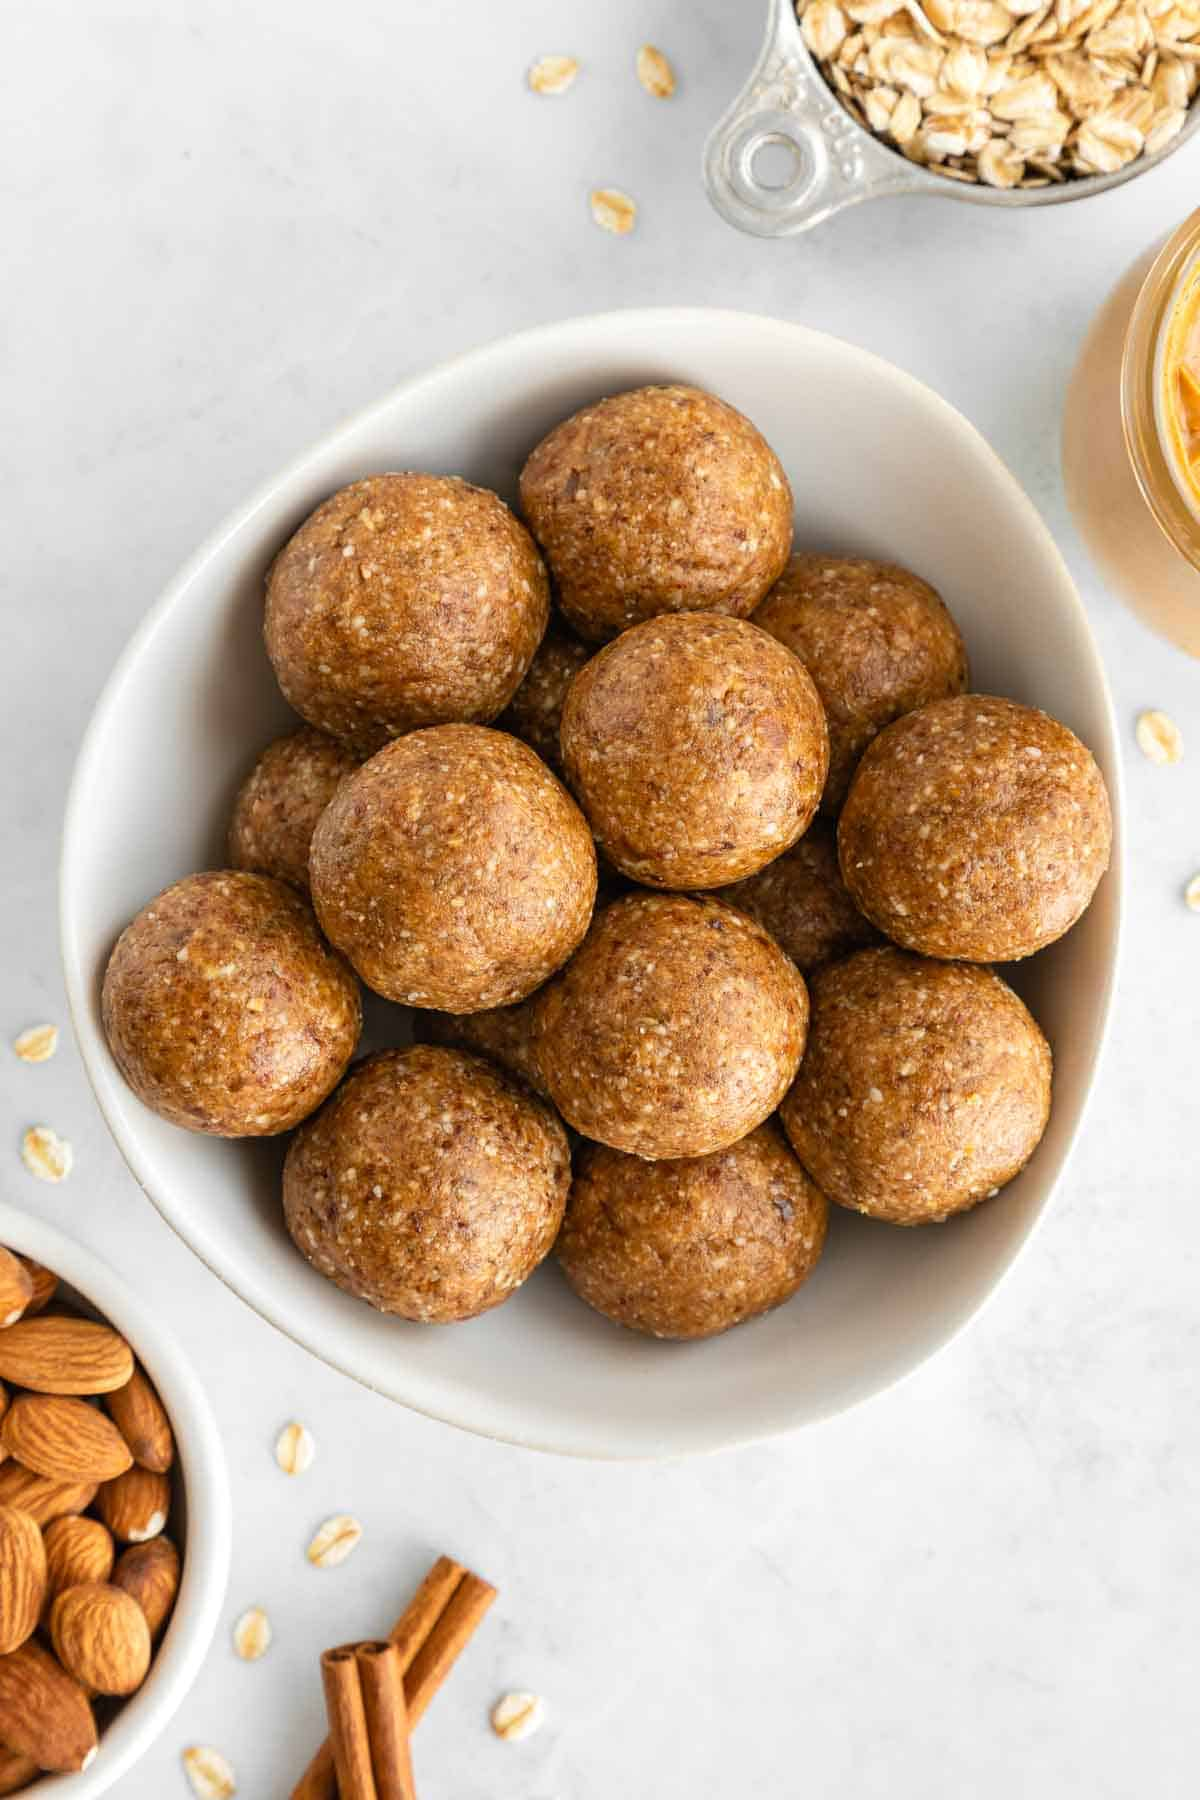 a bowl of almond butter energy balls beside almonds, rolled oats, and cinnamon sticks